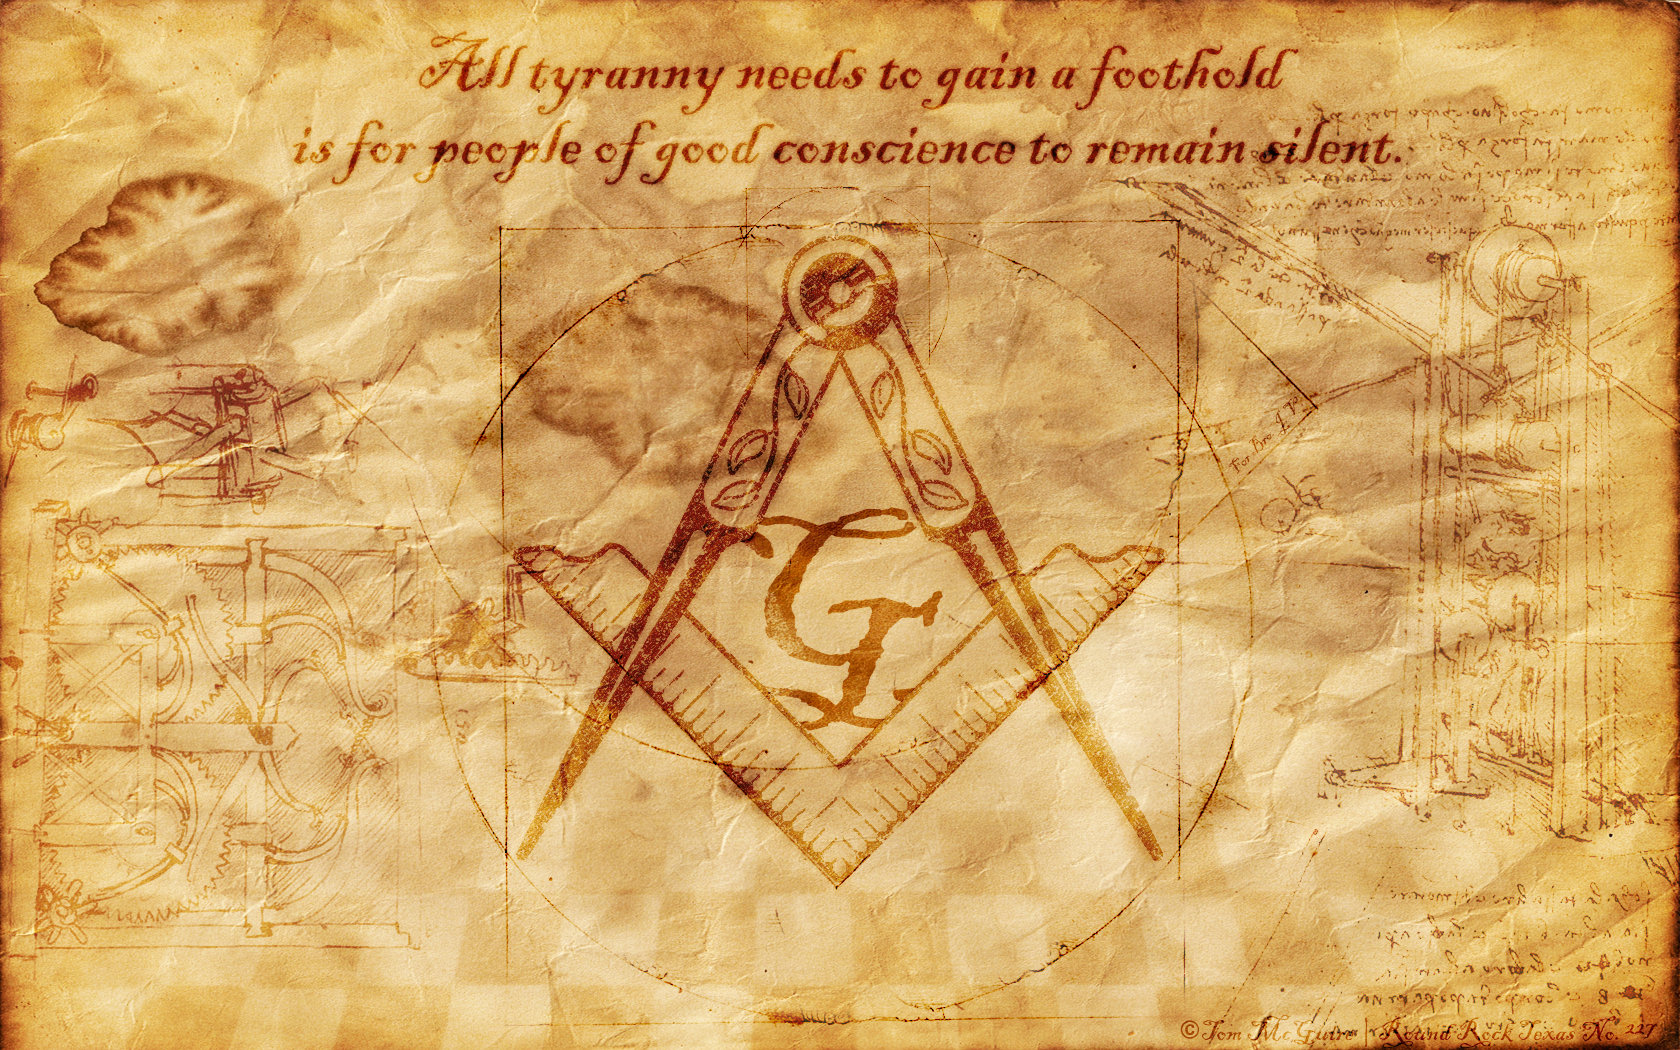 Freemason Wallpaper Backgrounds   wwwproteckmachinerycom 1680x1050